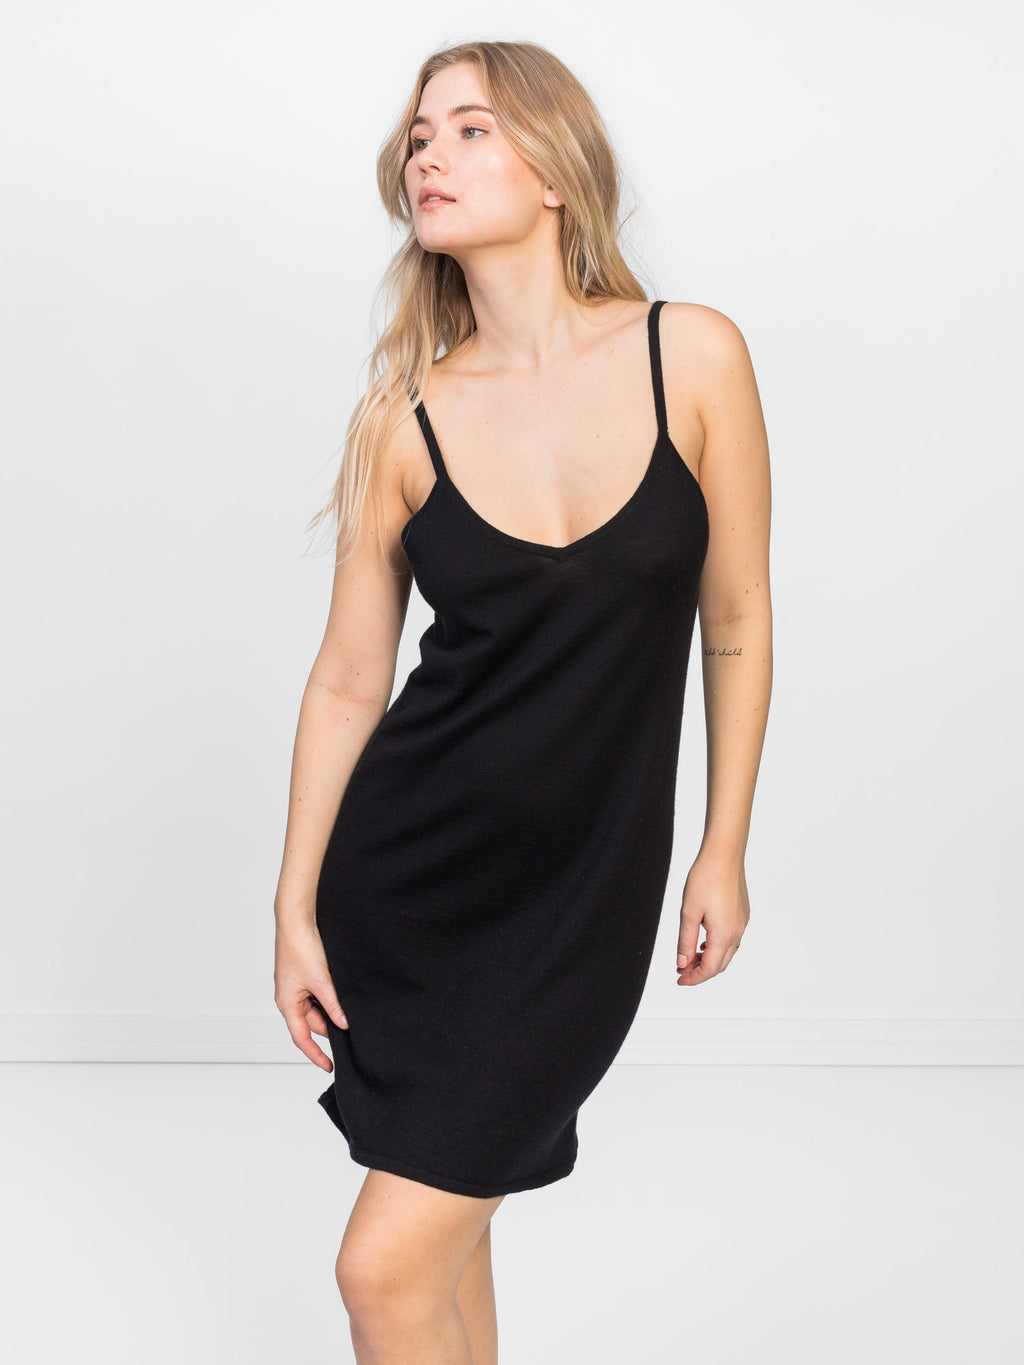 cashmere nightgown from Kashmina